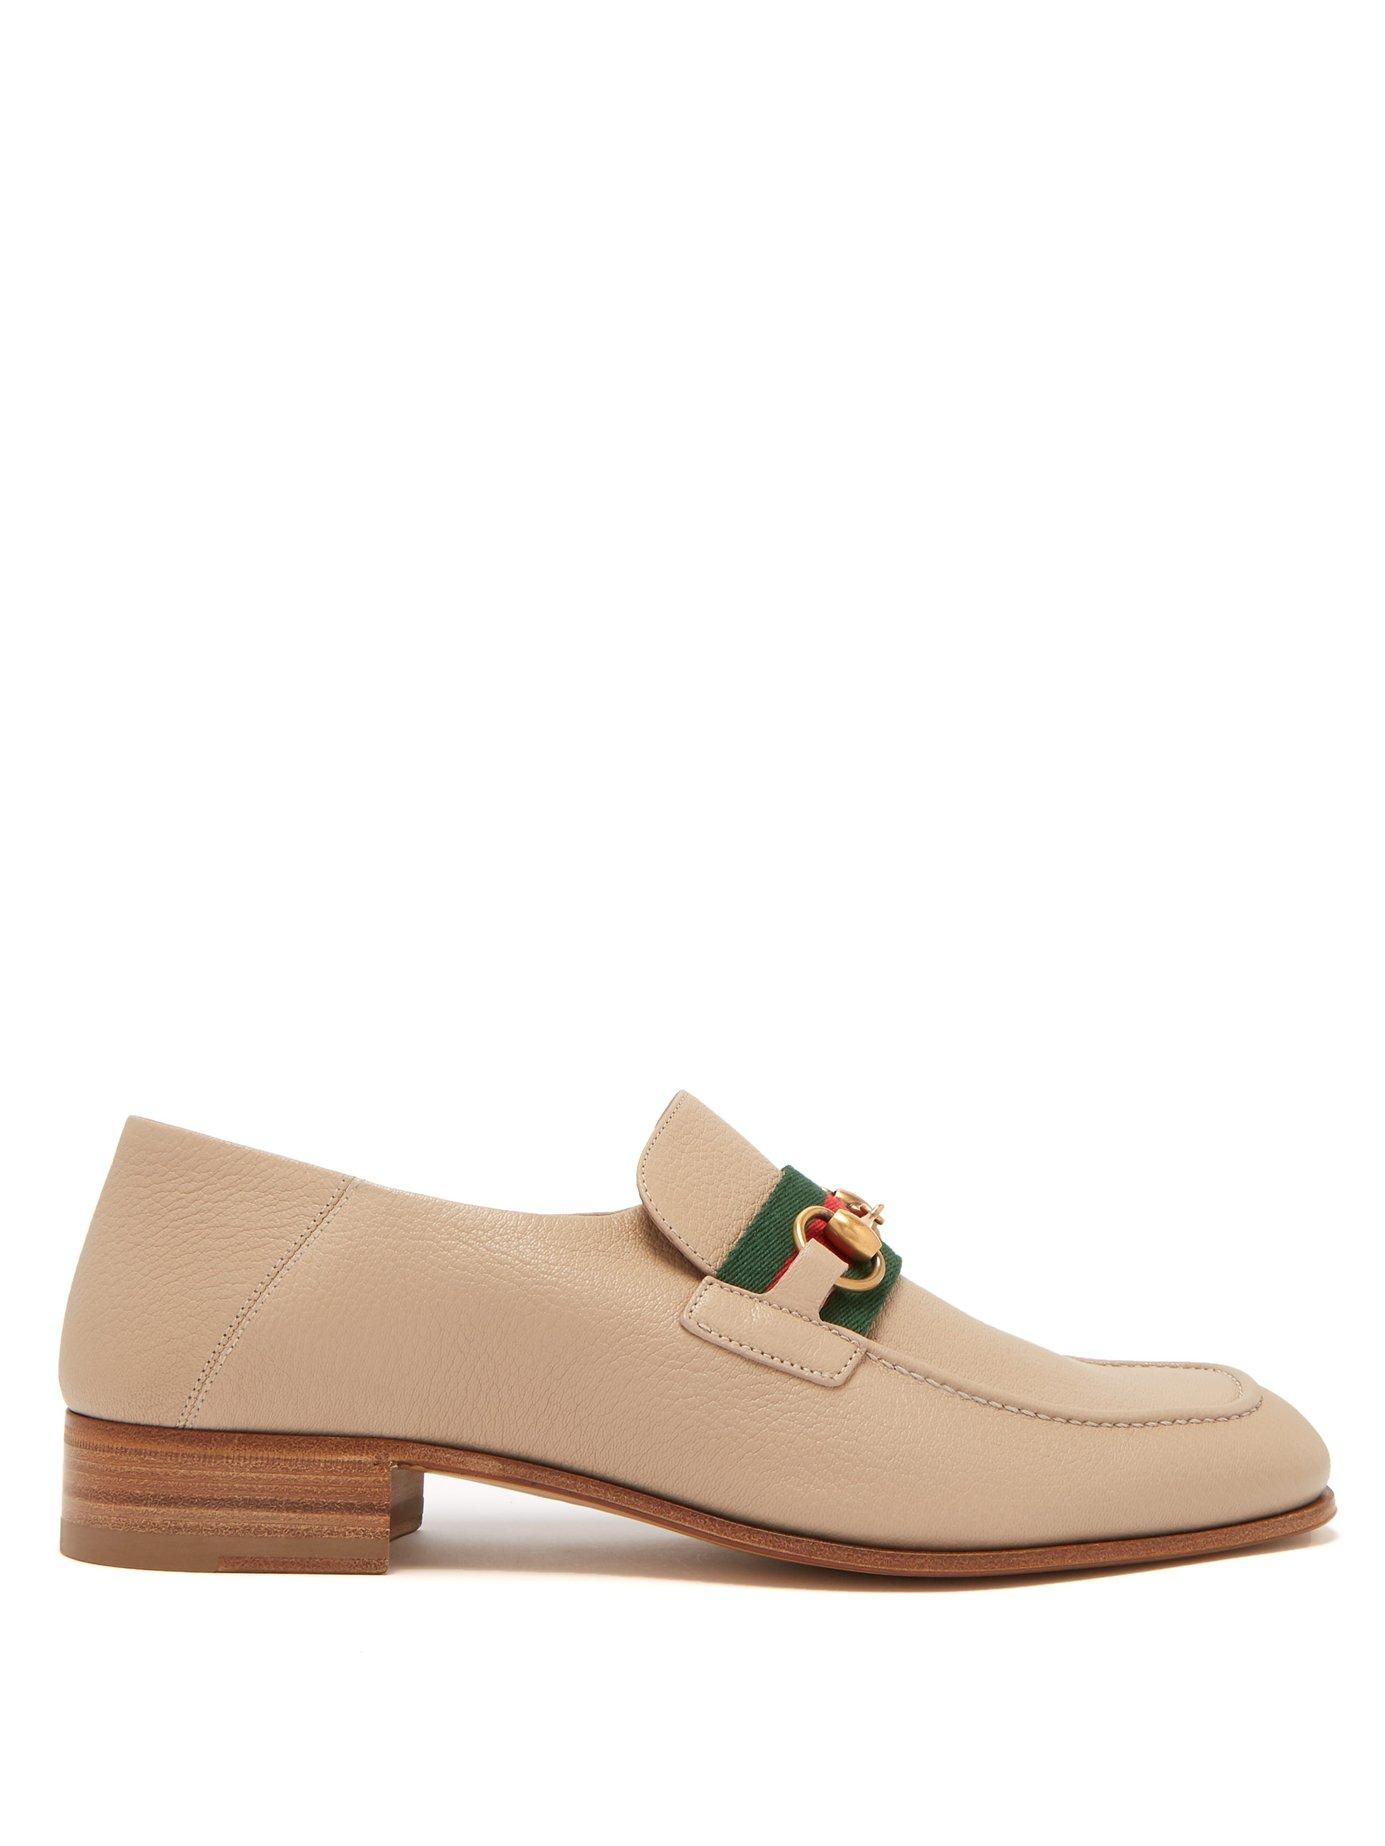 a634071ecef Lyst - Gucci Donnie Horsebit Leather Loafers in Natural for Men